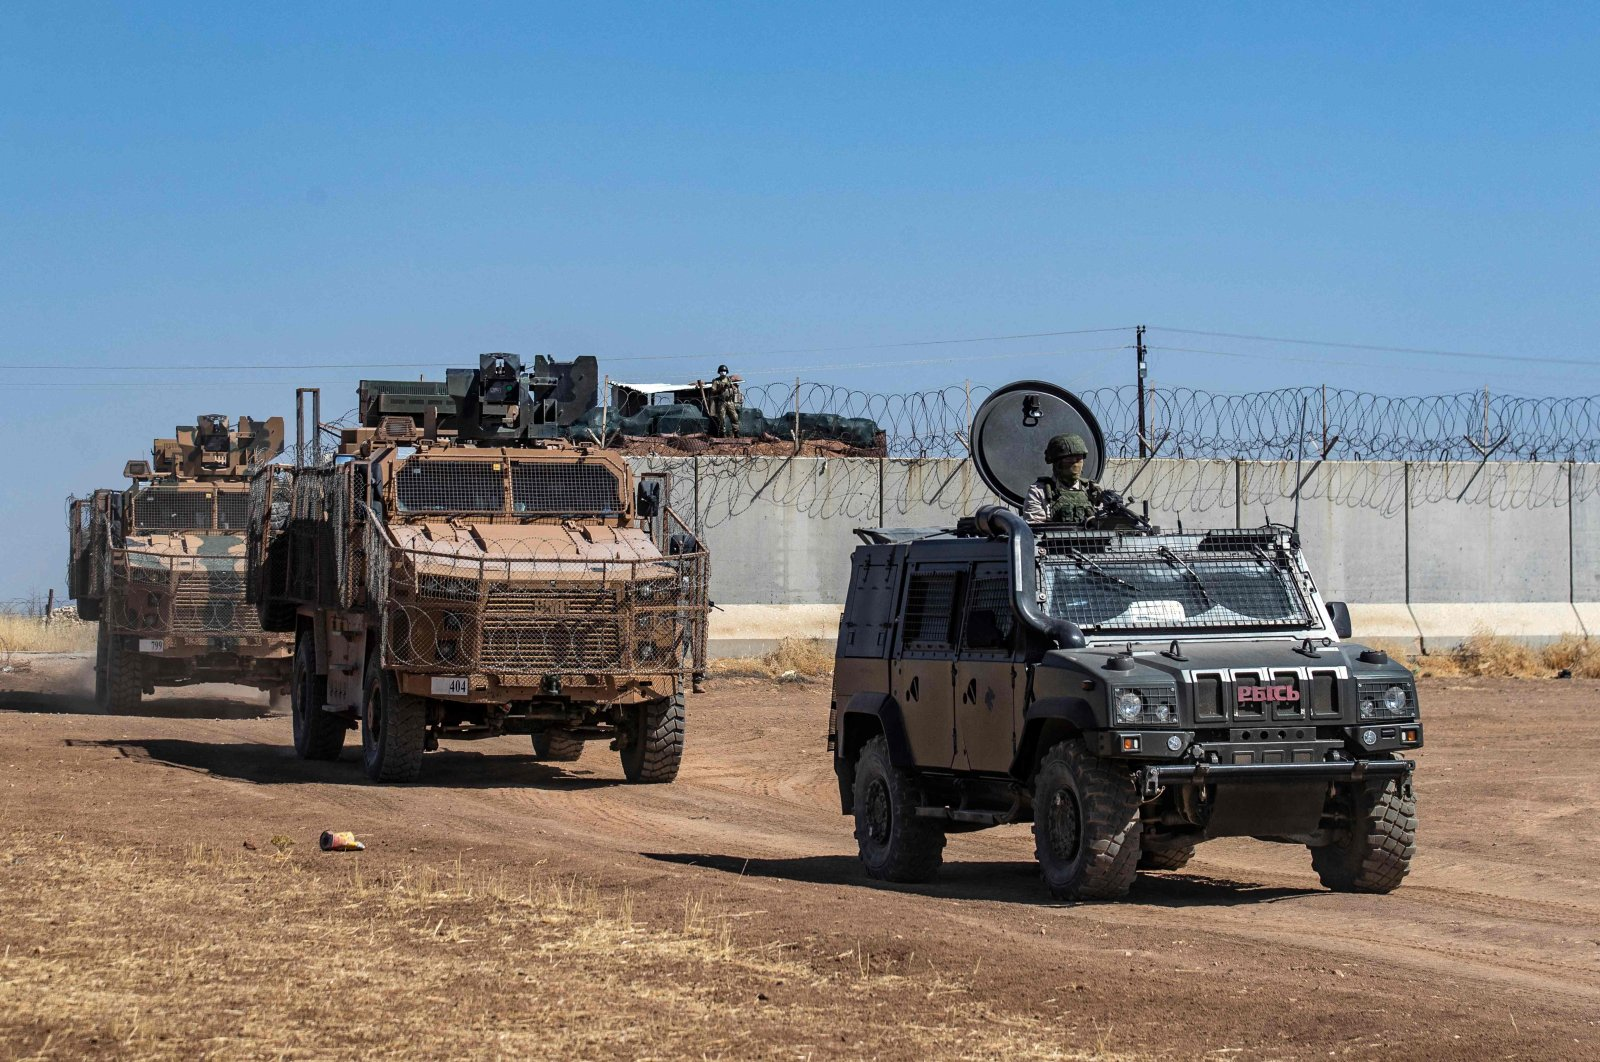 A joint Russian (R) and Turkish (L) convoy of military vehicles start a patrol from the border with Turkey, in the countryside of the town of Derbassiye in northeastern Hasakeh province, Syria, on July 14, 2021. (AFP Photo)